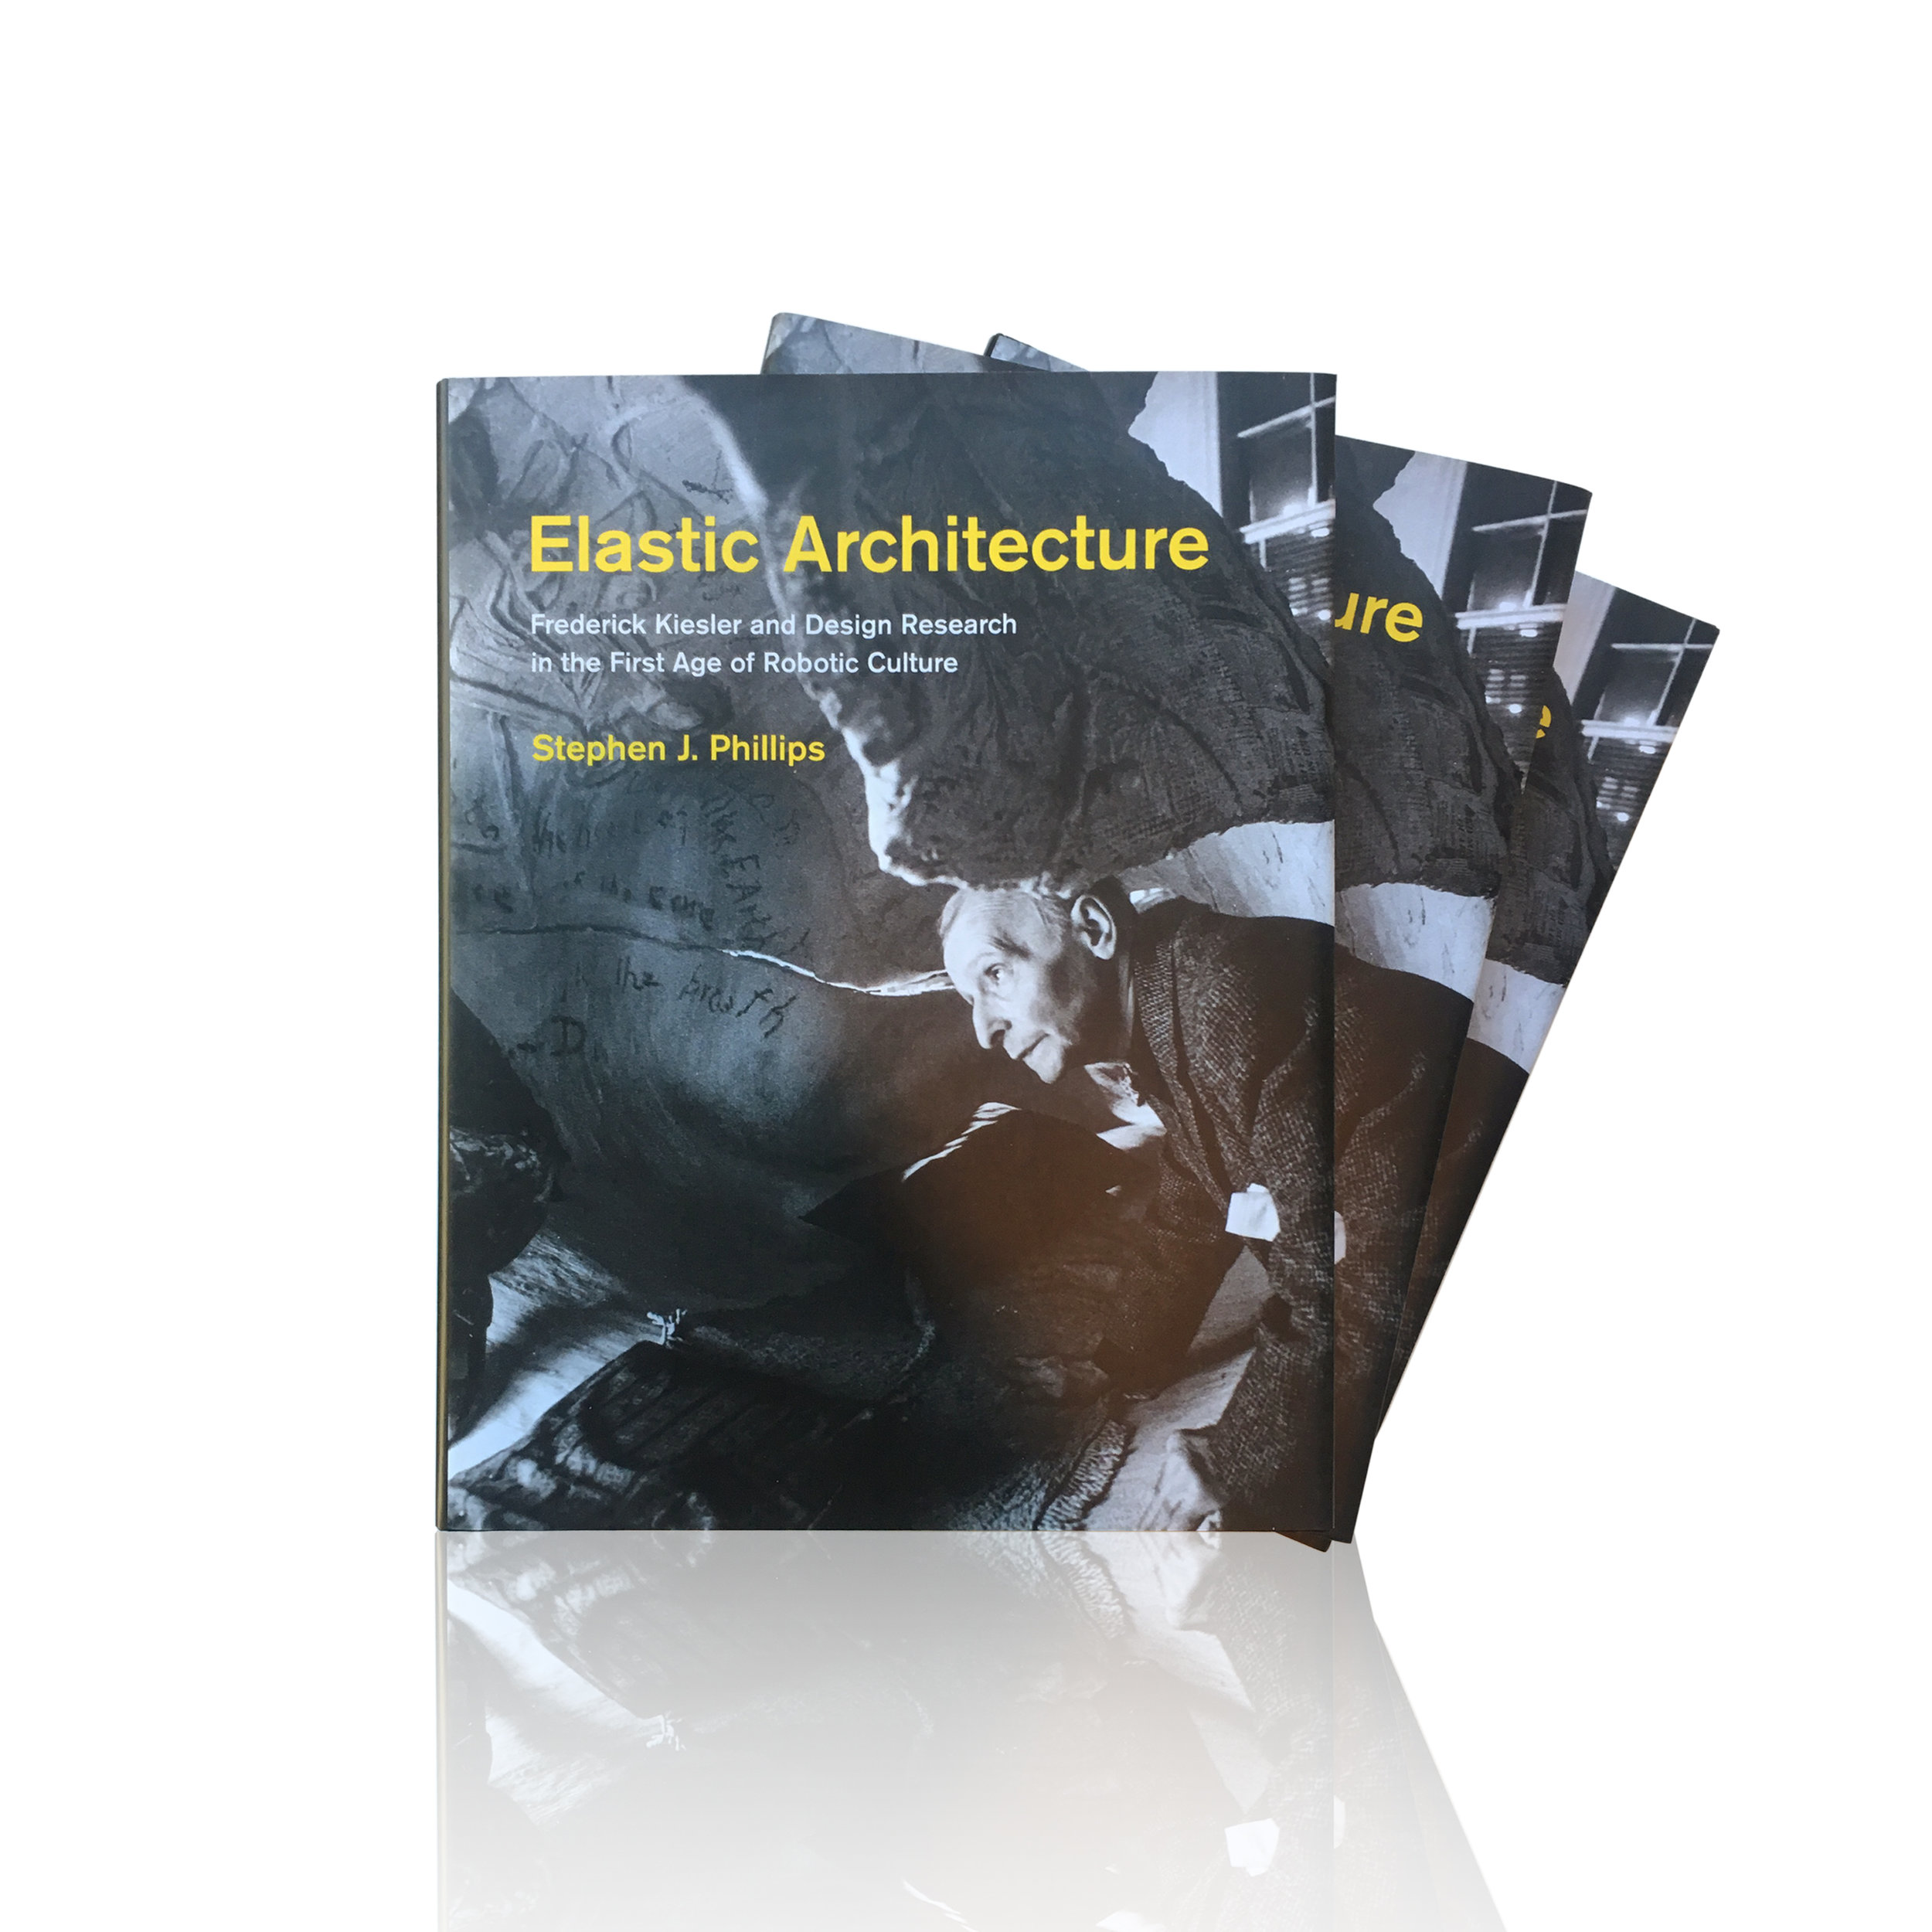 Elastic Architecture: Frederick Kiesler and Design Research in the First Age of Robotic Culture   Author Stephen Phillips (Cambridge: MIT Press,Spring, 2017).    order here